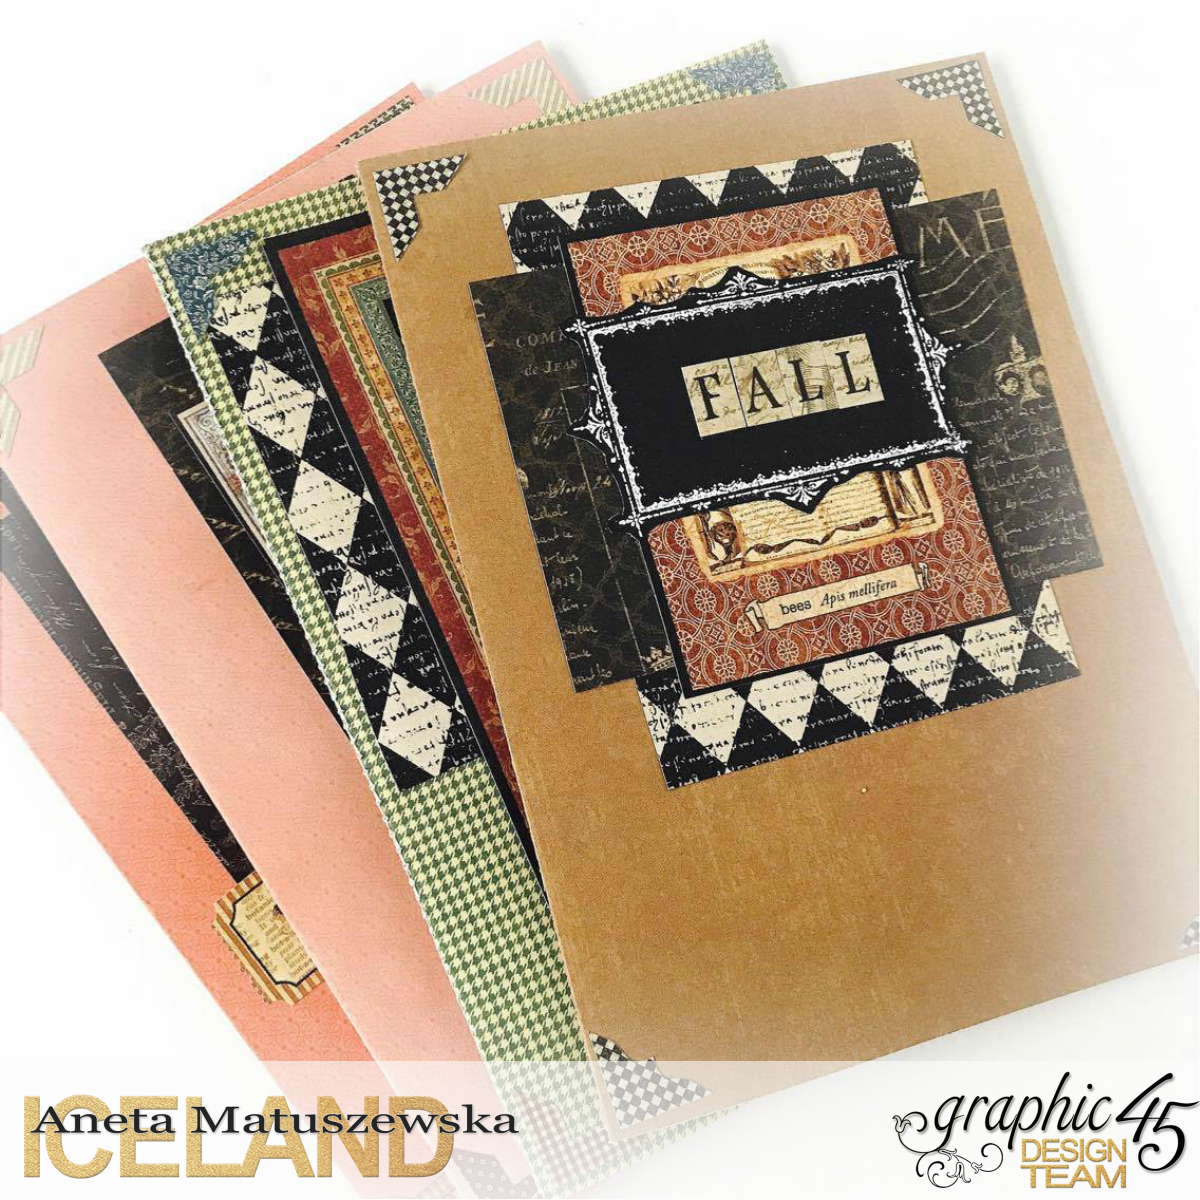 Autumn handmade notebooks for G45, by Aneta Matuszewska, photo 2.png